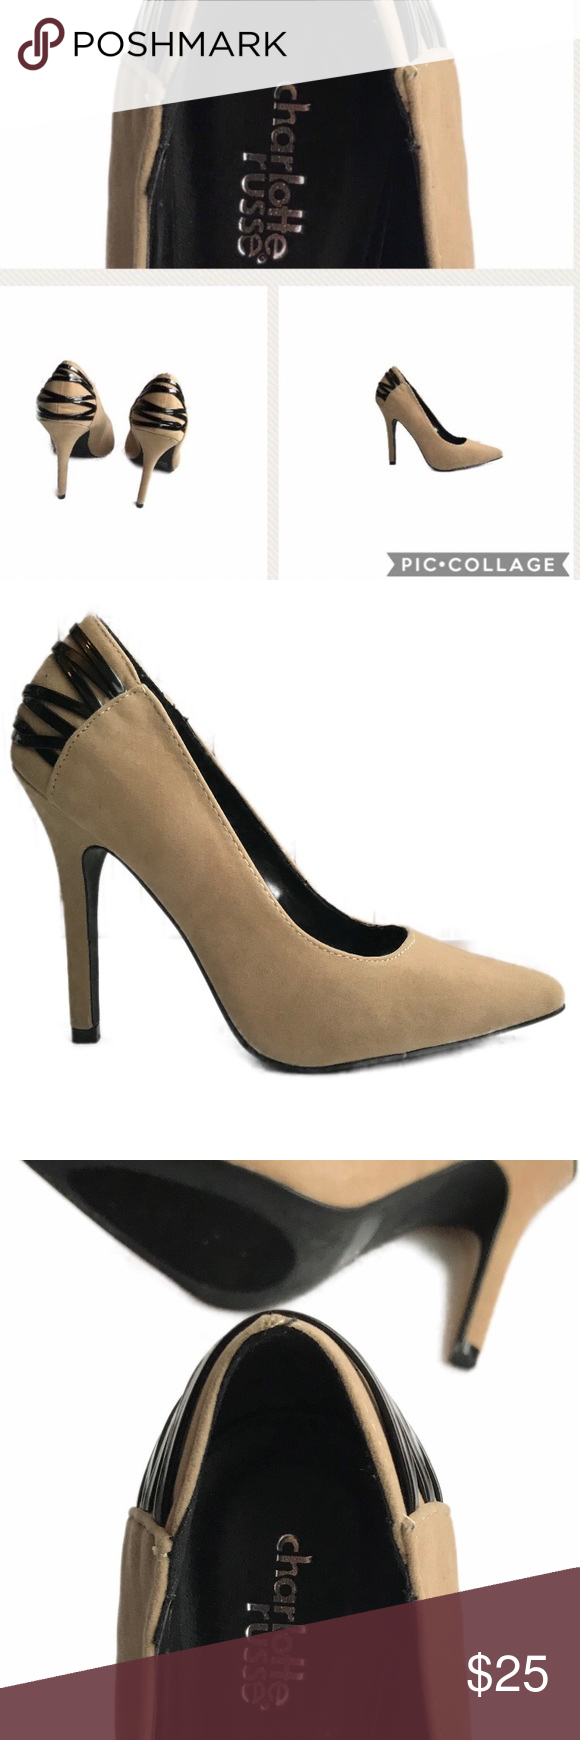 8ccda4f1645 Charlotte Russe Pumps Charlotte Russe Tan Suede Pump. (No shoe box) Pre- Owned and in good condition. (Only worn a few times) Size 8 4 inch heel  Lovely to ...